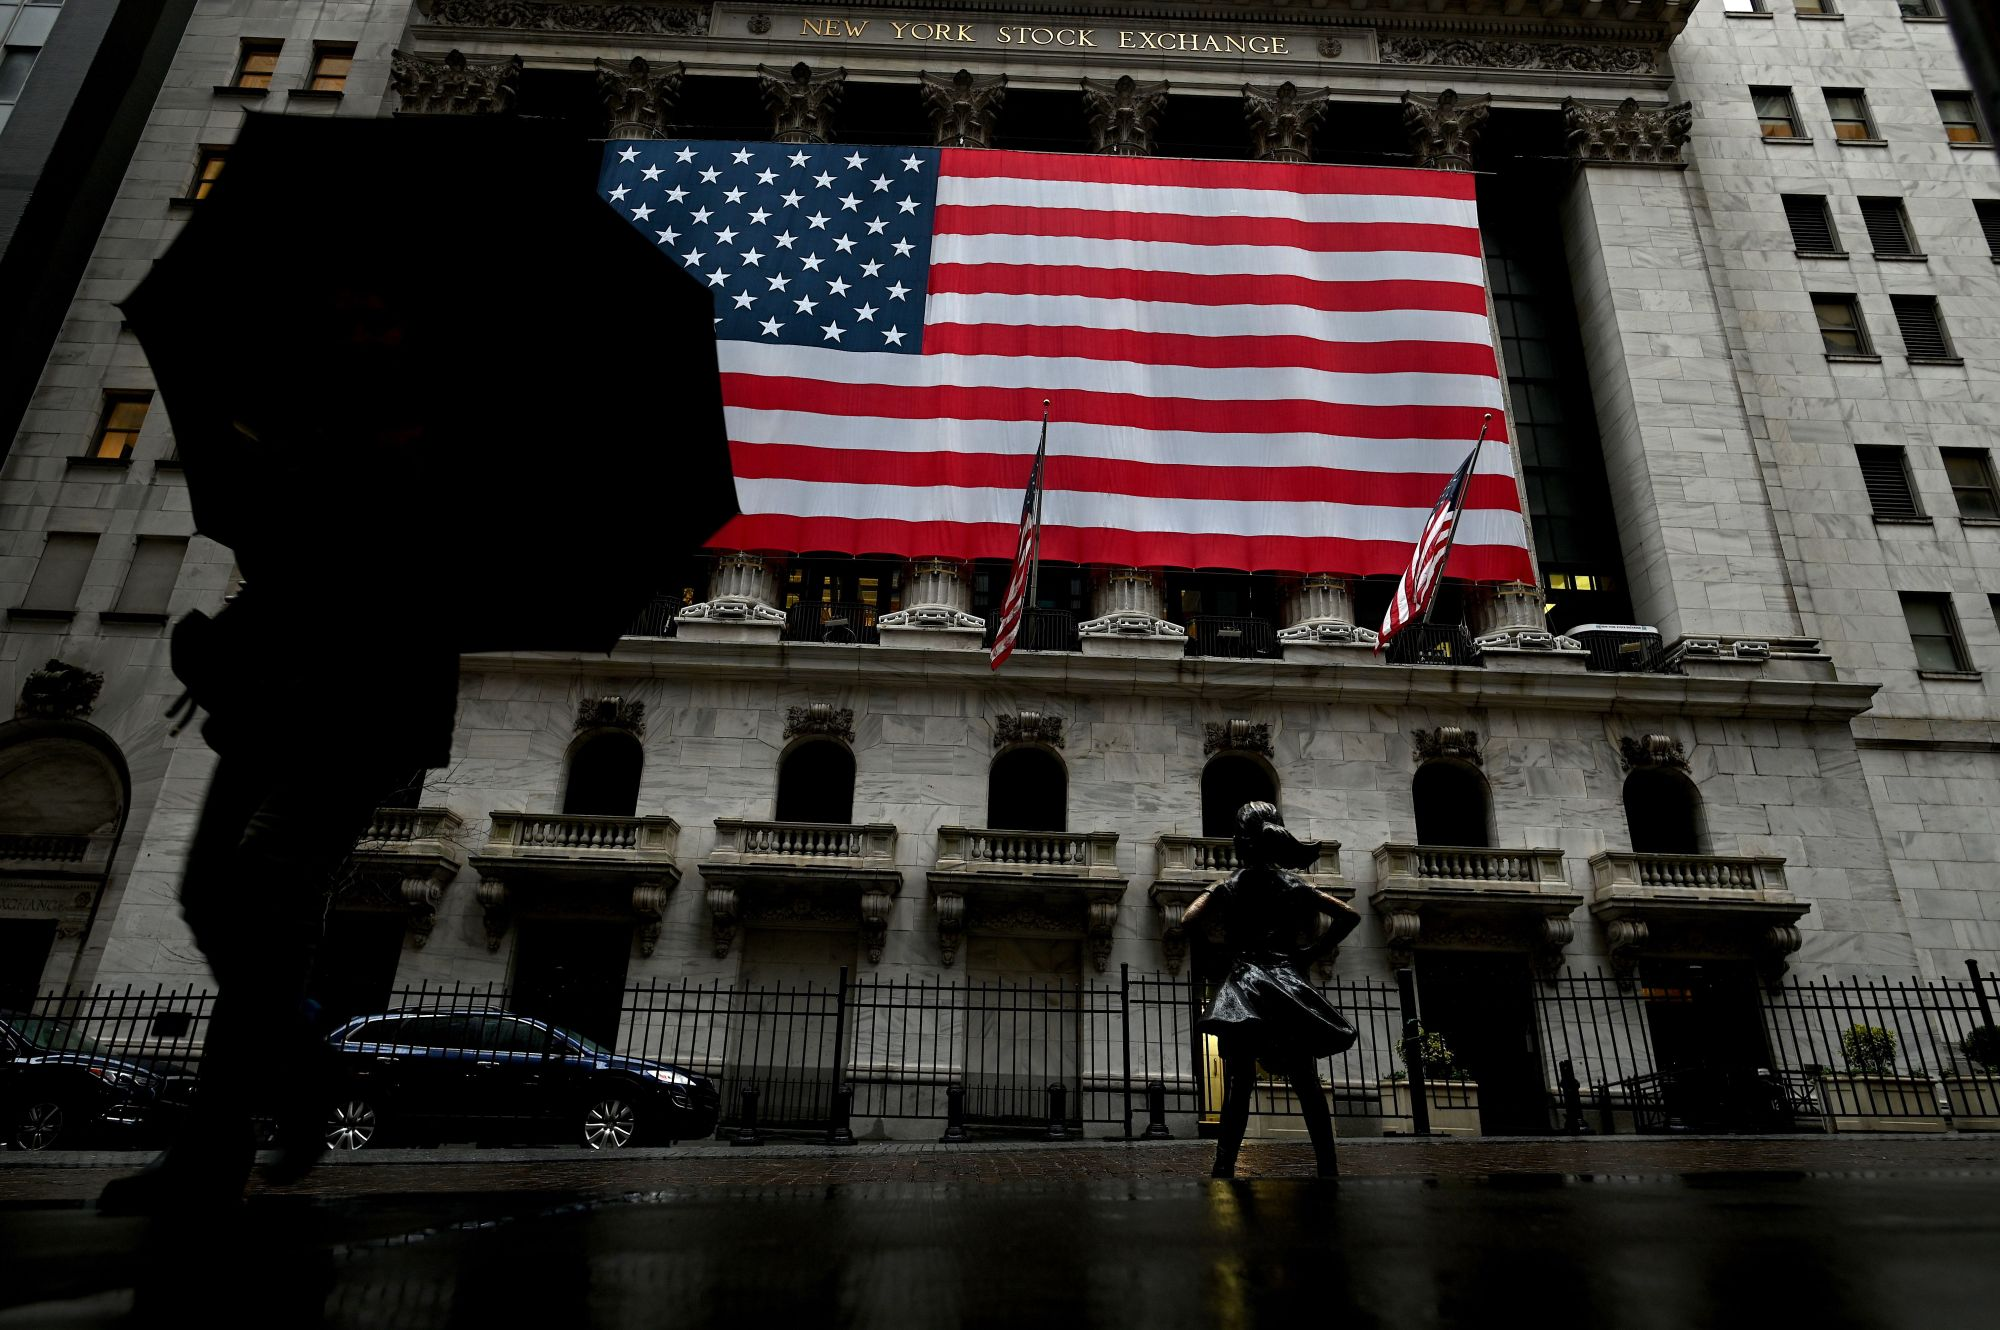 A woman walks past the New York Stock Exchange on March 19, 2020 at Wall Street in New York City. (JOHANNES EISELE/AFP via Getty Images)